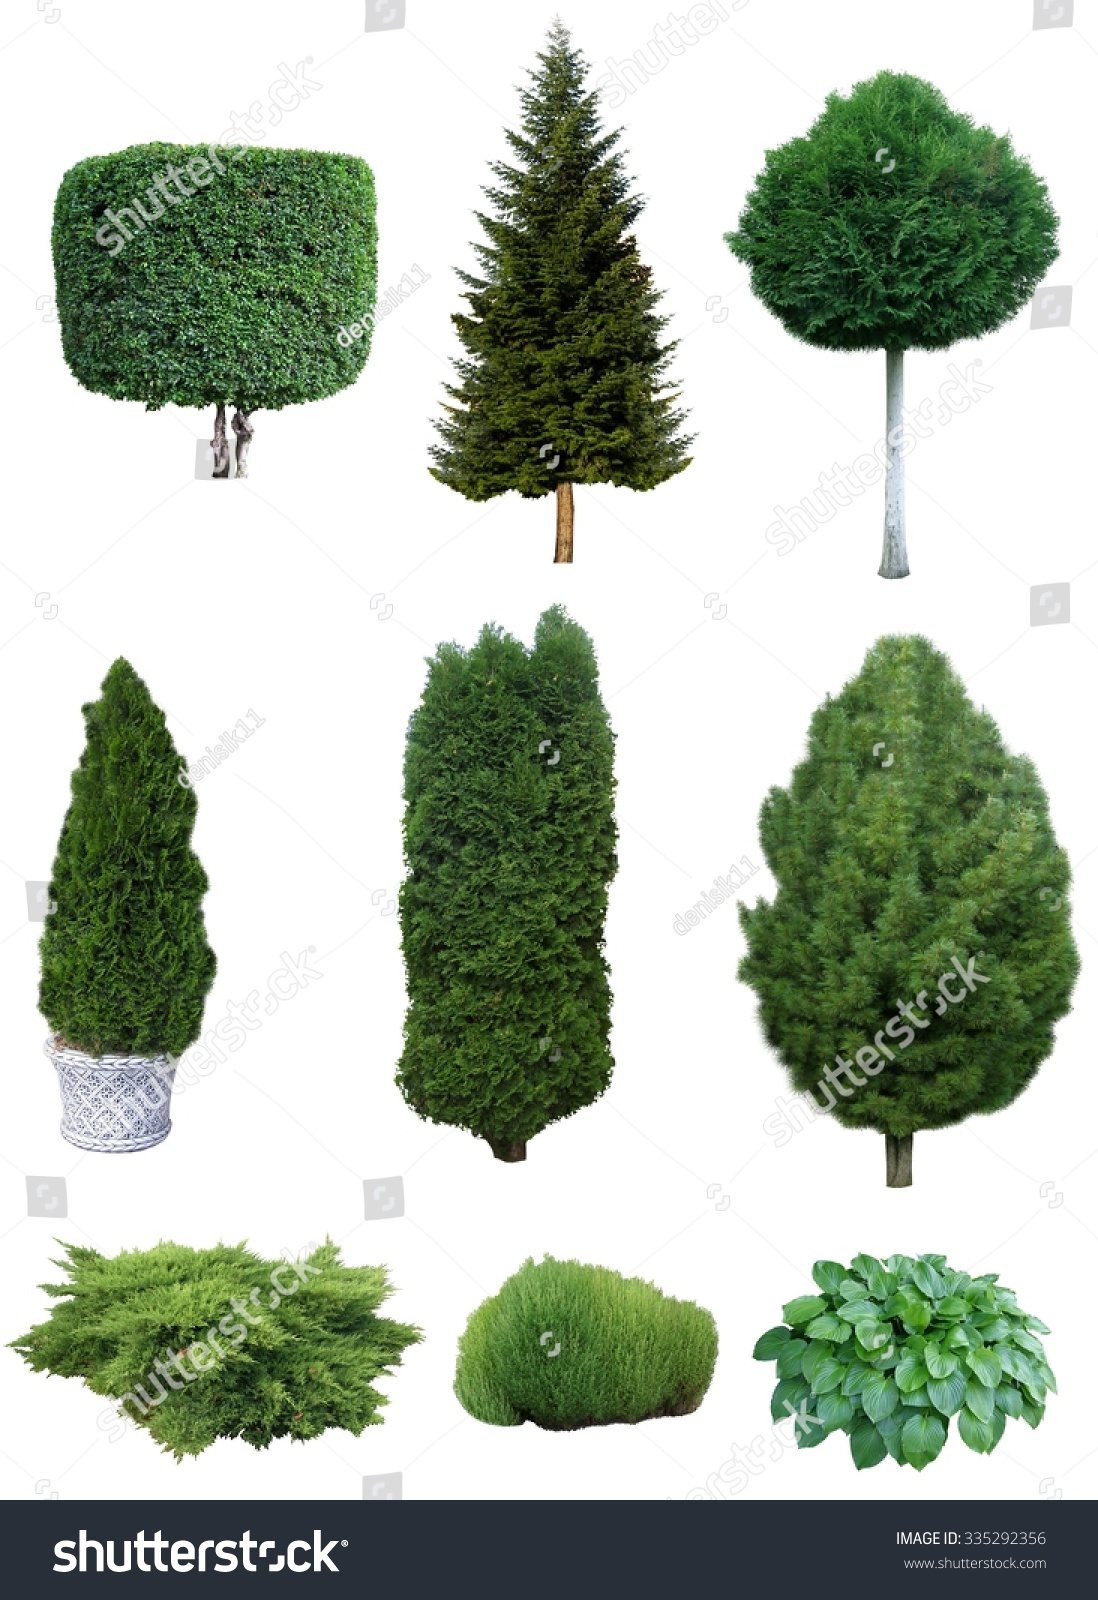 set of trees and shrubs set of various evergreen trees and shrubs for the garden